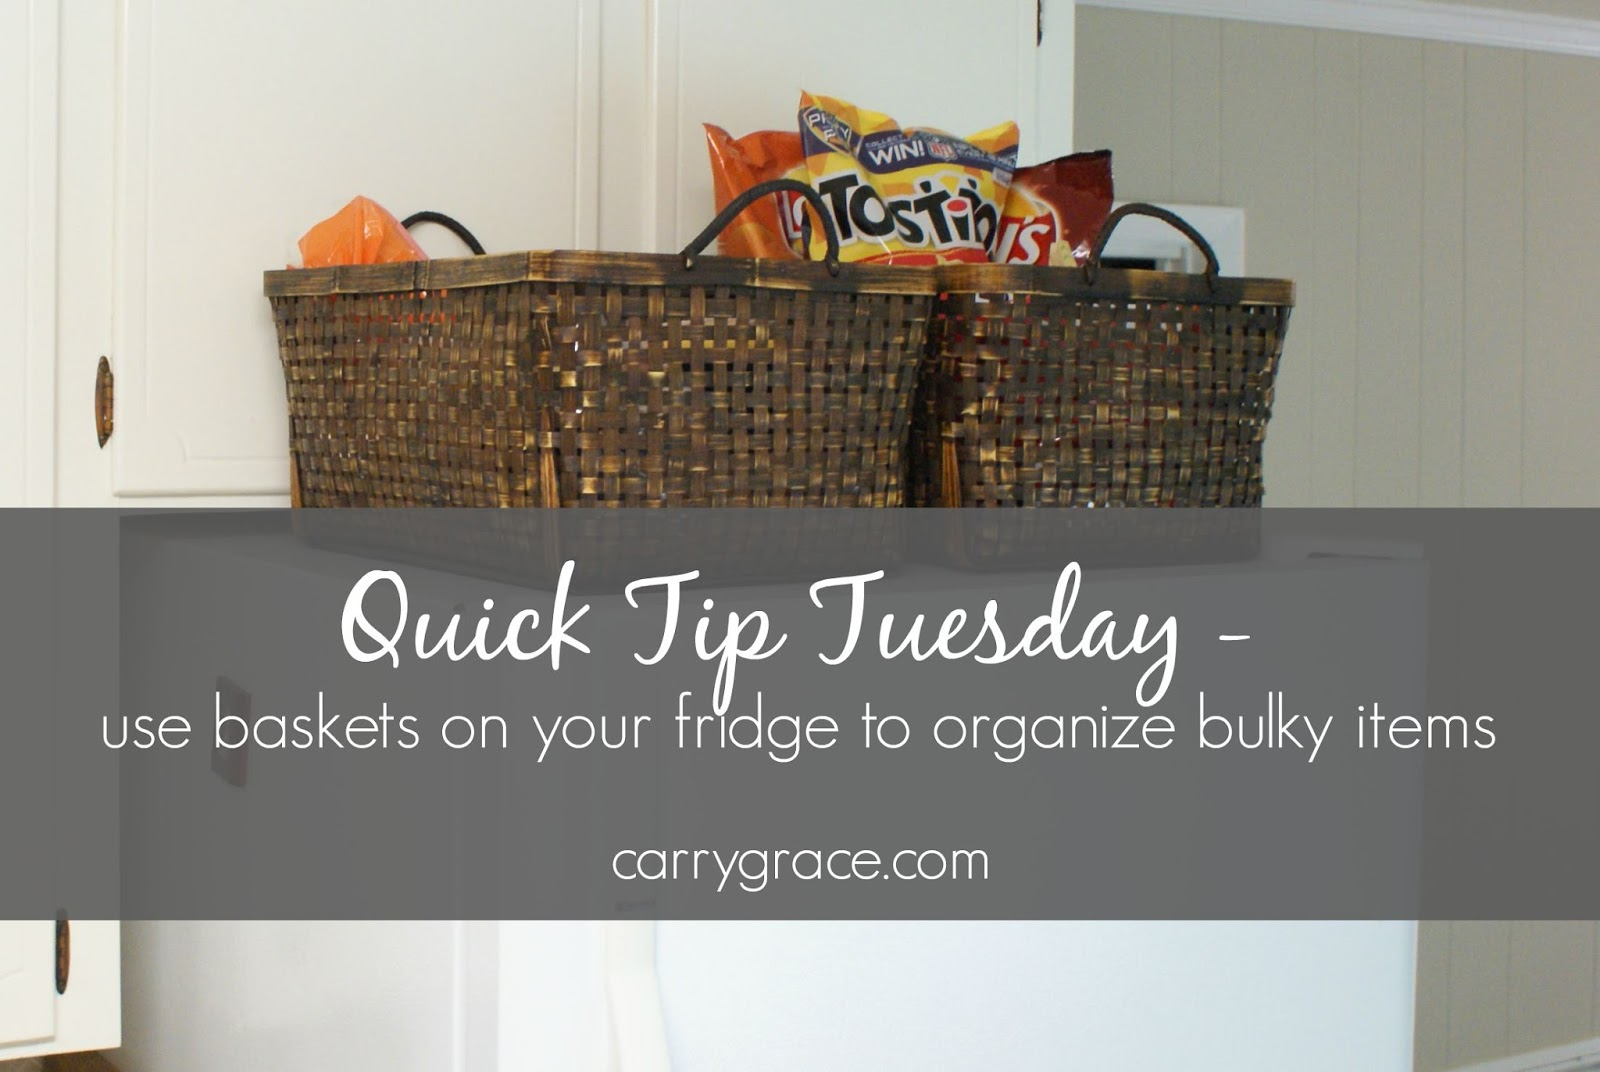 Did You Catch, Quick Tip Tuesday This Week? Youu0027ll Have To Let Me Know How  You Like These Posts And Videos.